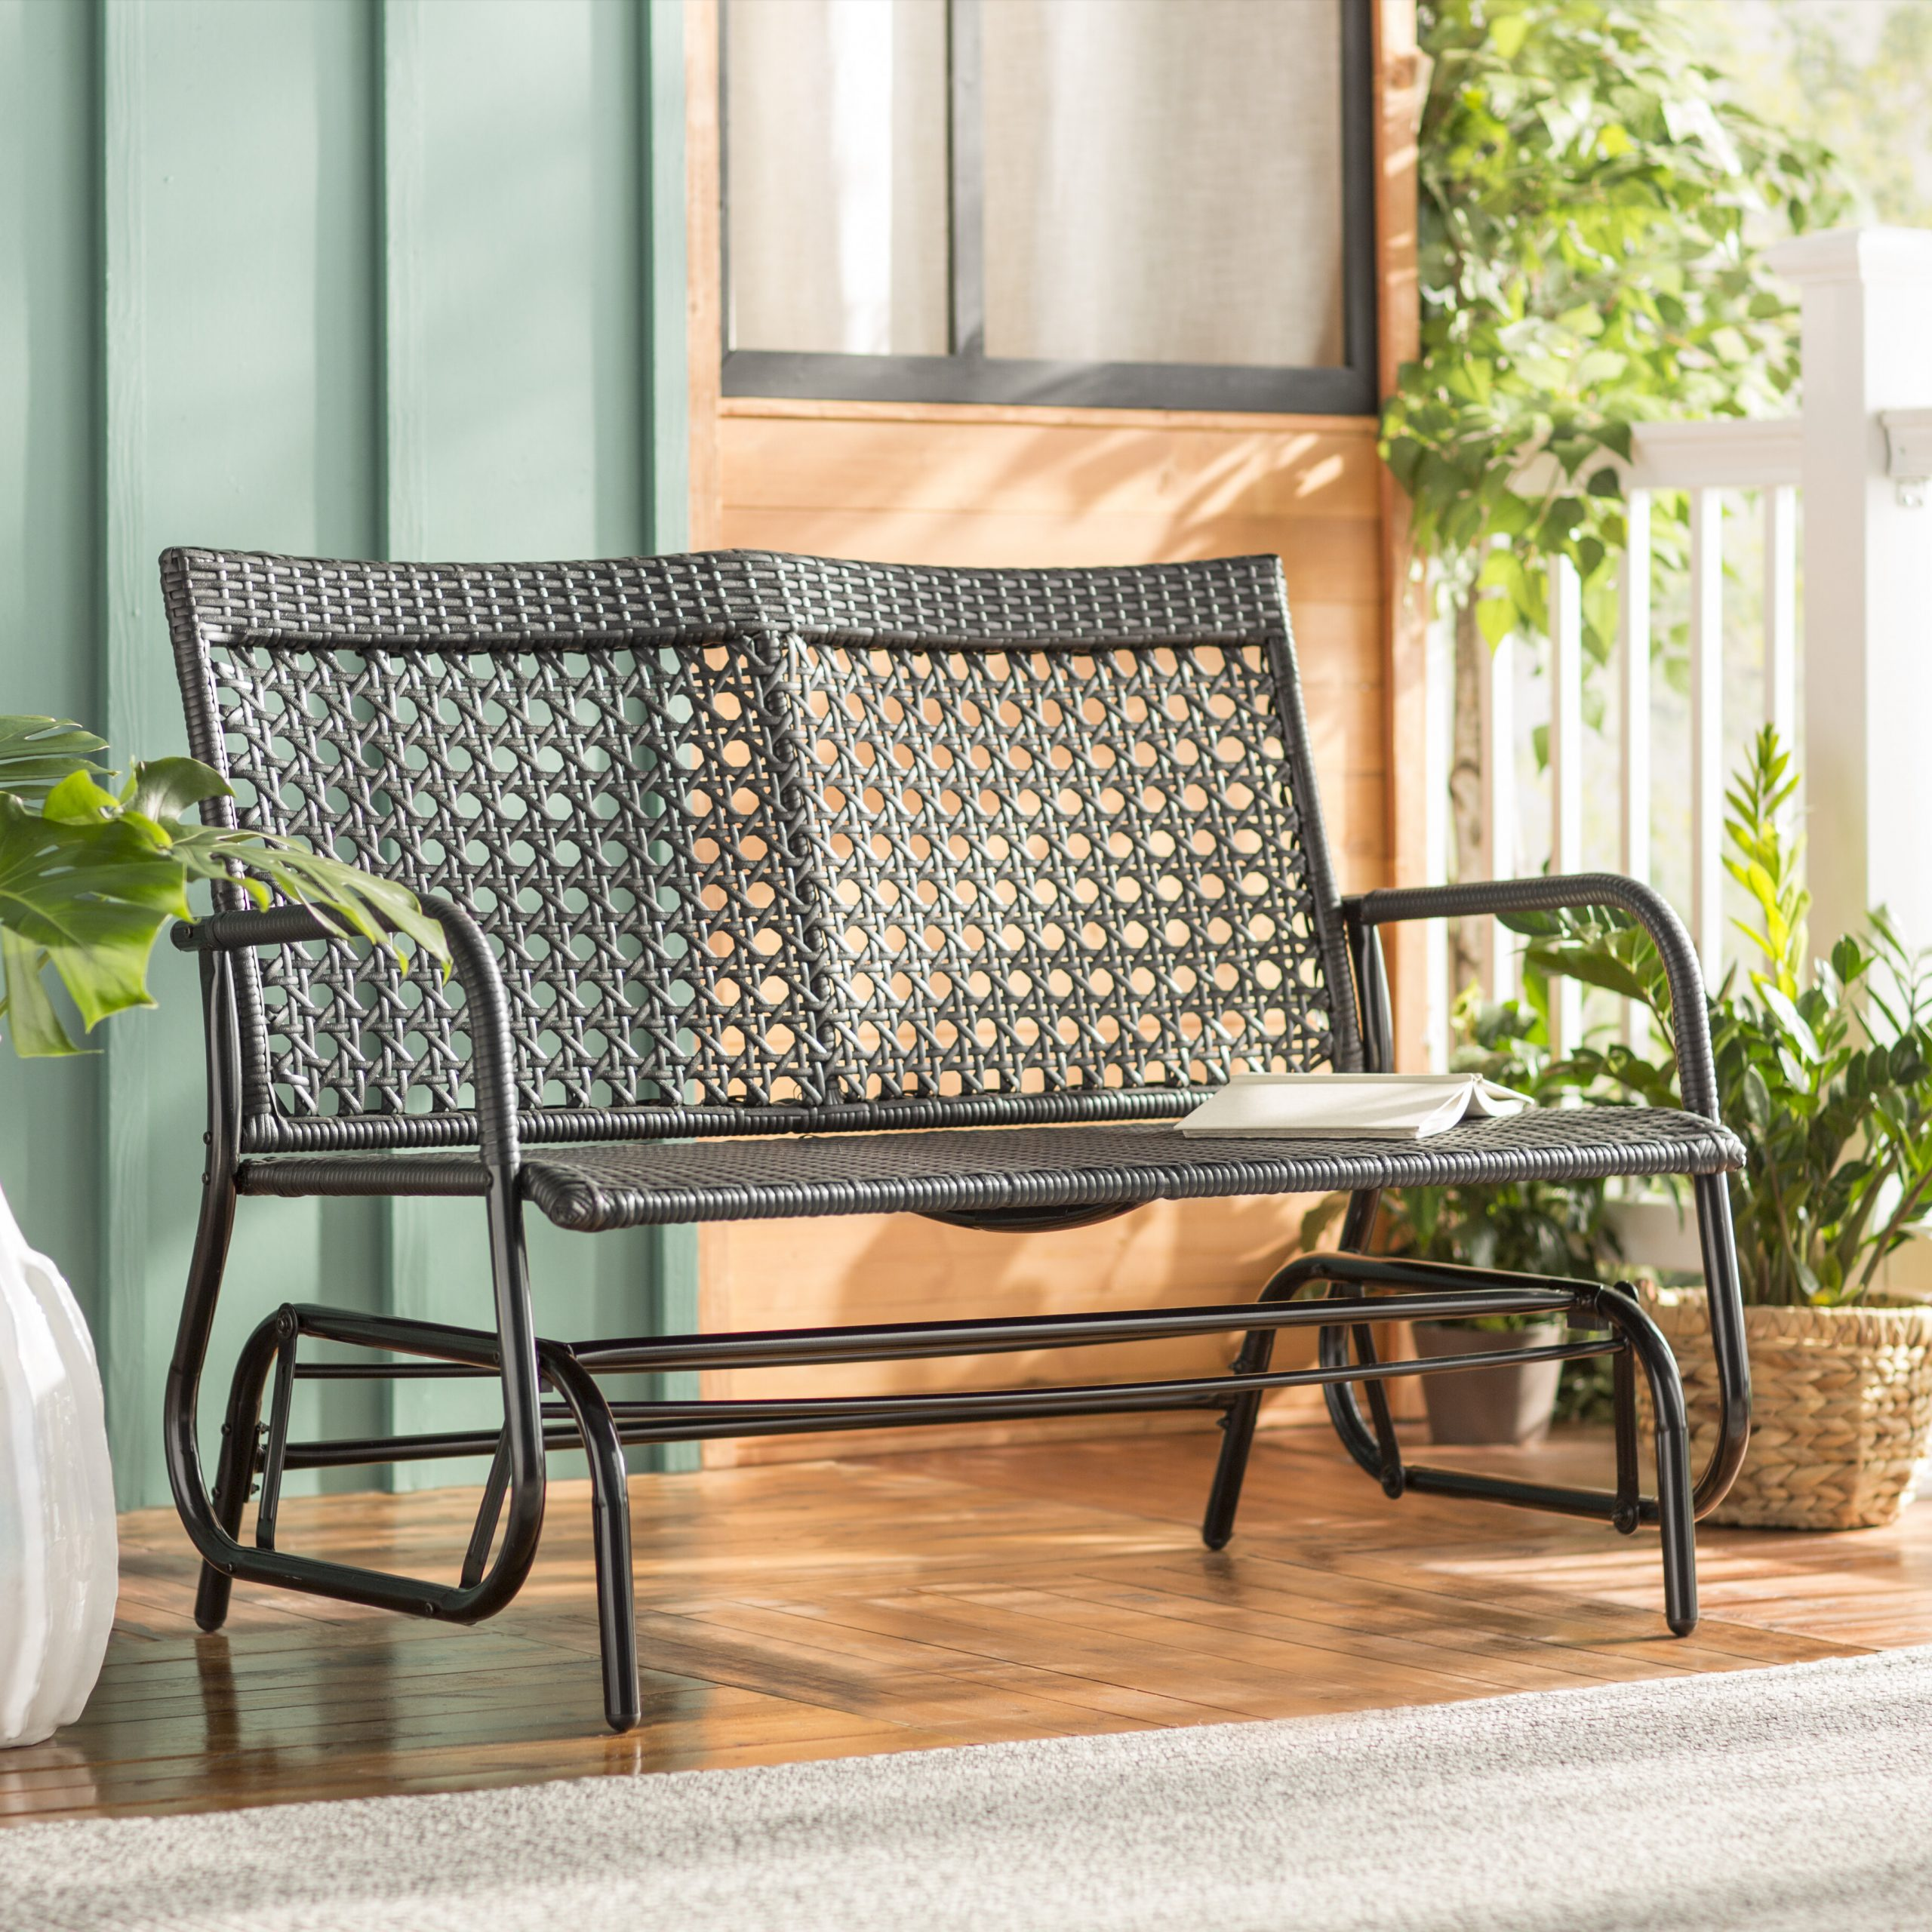 Widely Used Wrought Studio Shupe Steel Rattan Outdoor Patio Double Inside Aluminum Outdoor Double Glider Benches (Gallery 23 of 30)